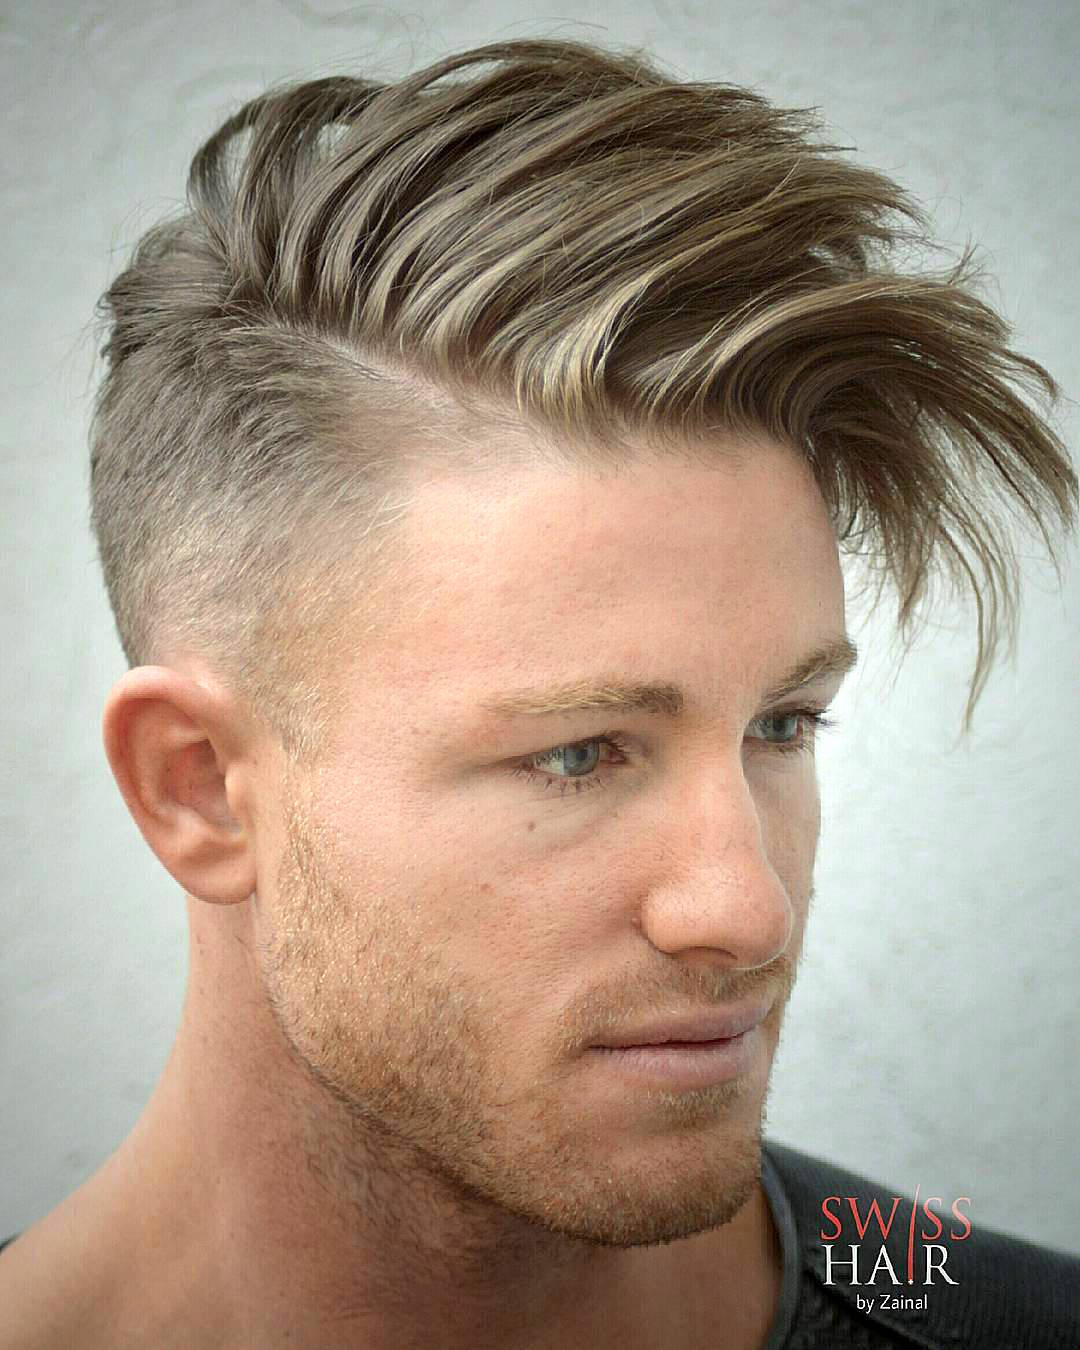 Long Hair Combover Hairstyle For Men